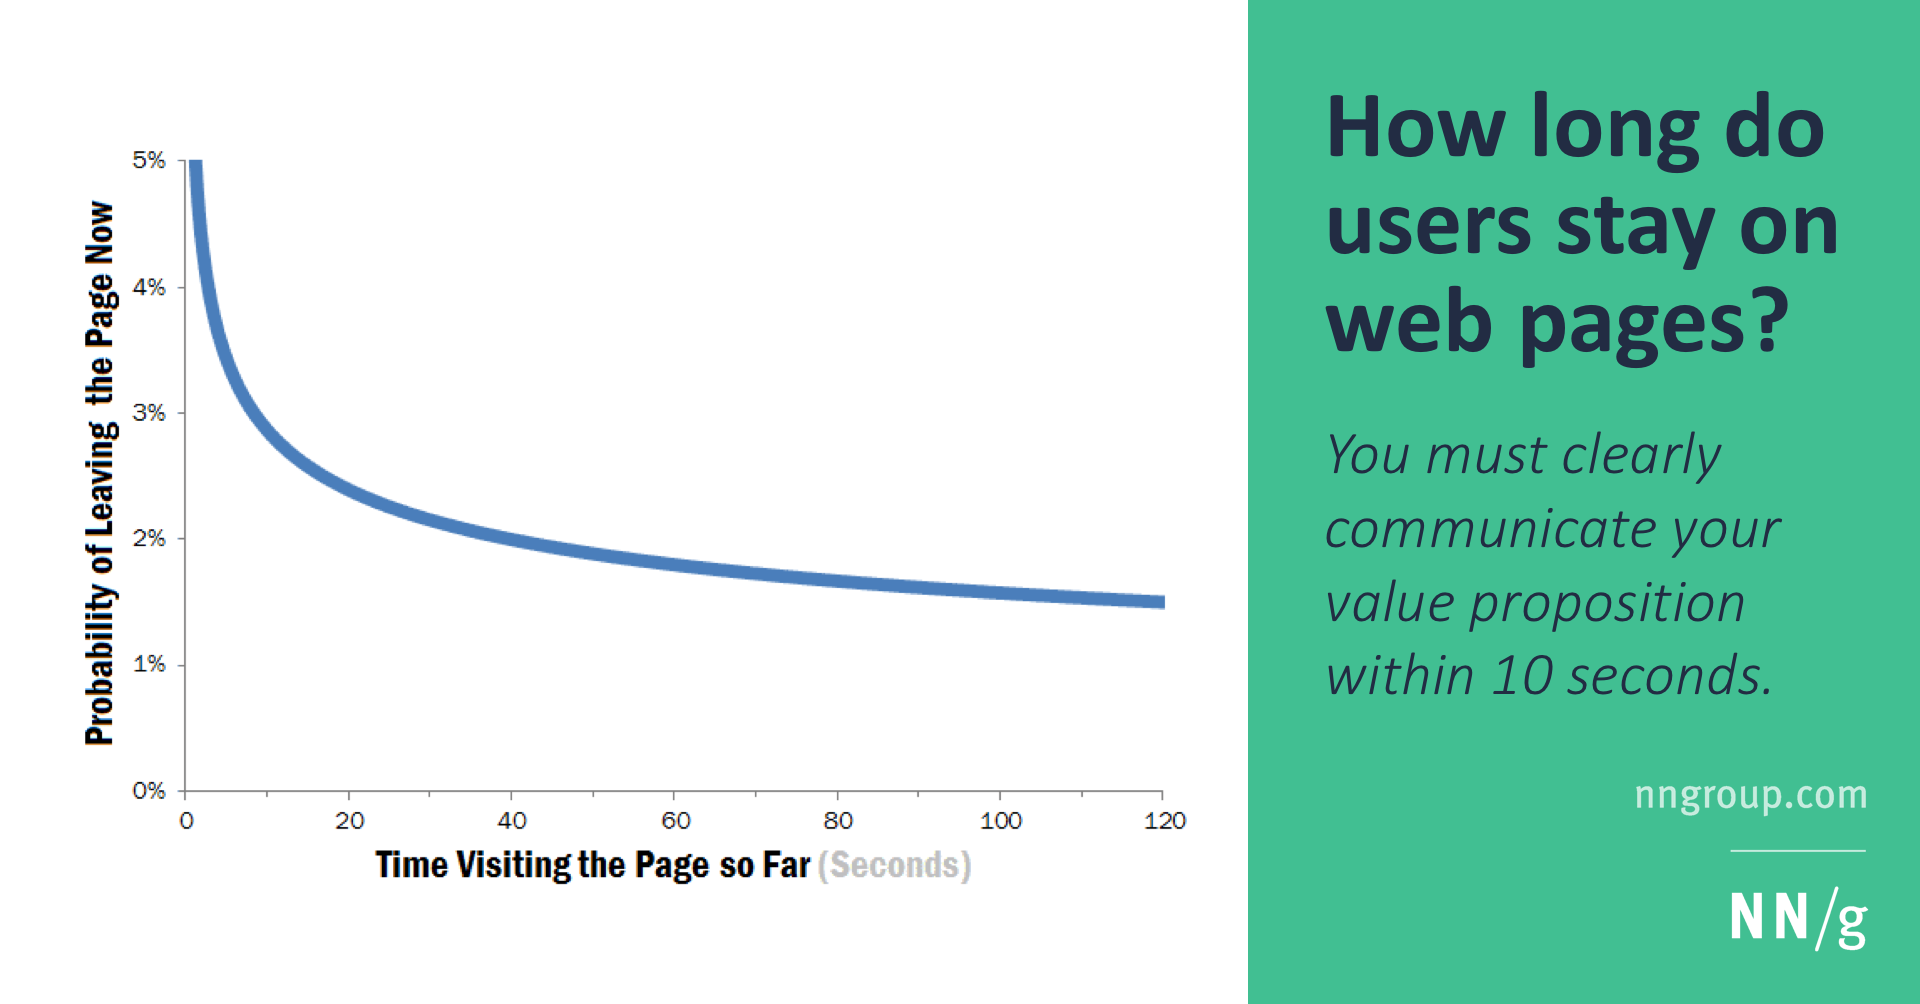 How Long Do Users Stay on Web Pages?